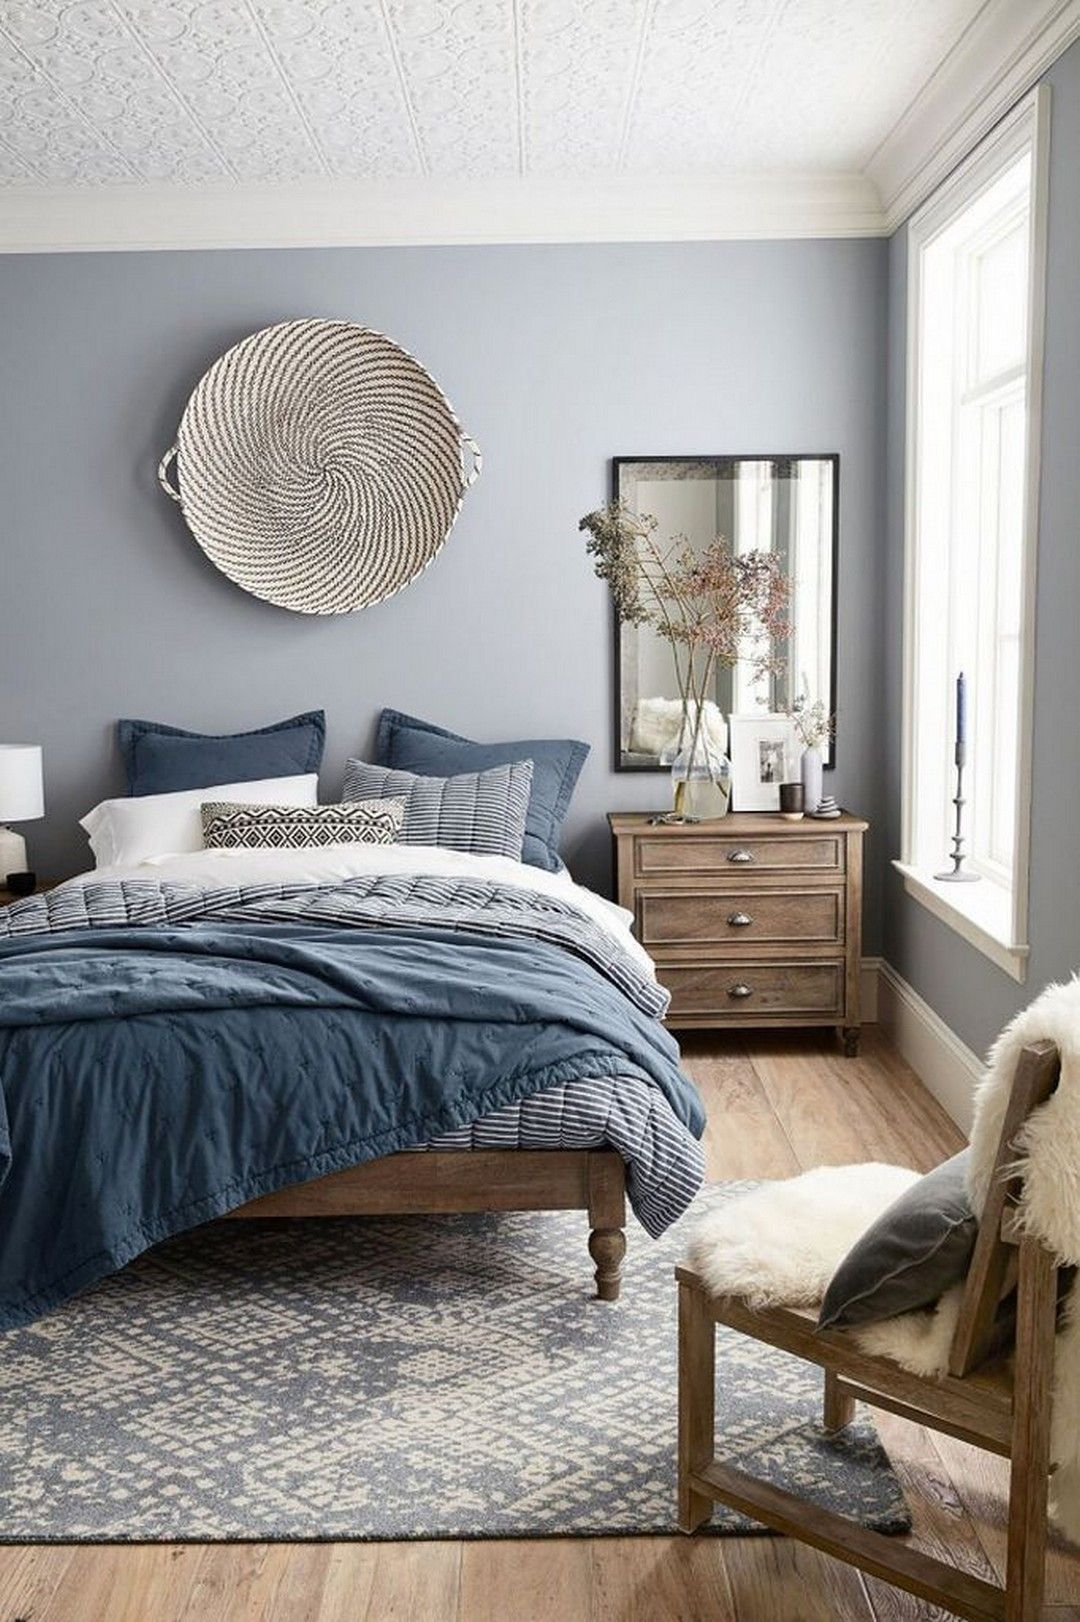 1 Bedroom Apartments In Boone Nc Master Bedroom Interior Small Master Bedroom Master Bedrooms Decor